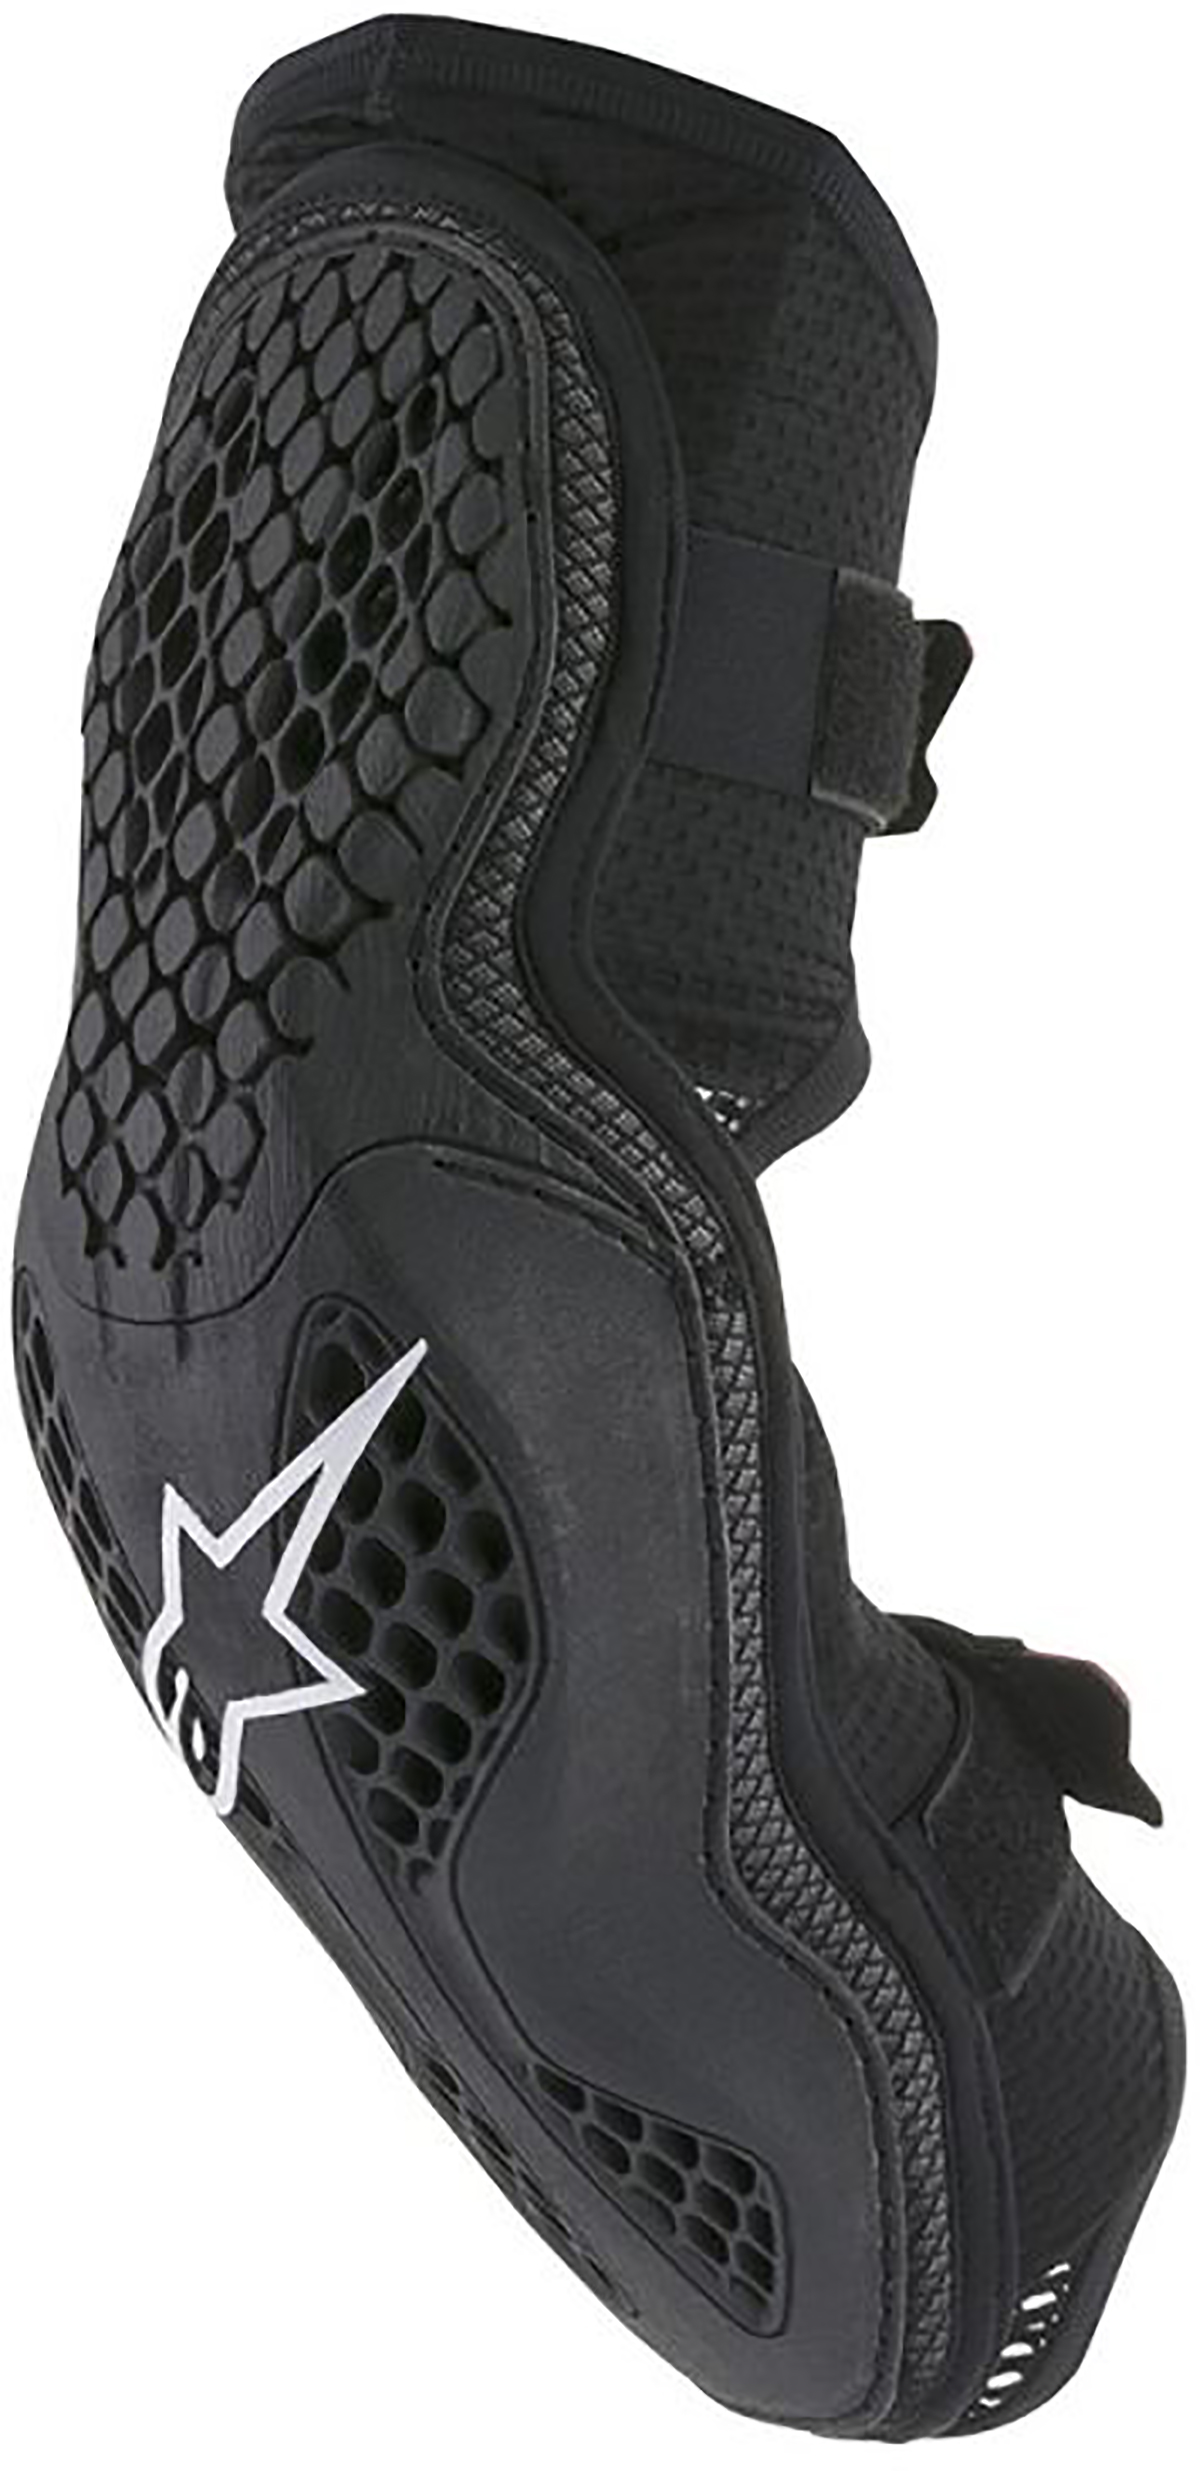 Alpinestars Sequence Elbow Protector | Amour